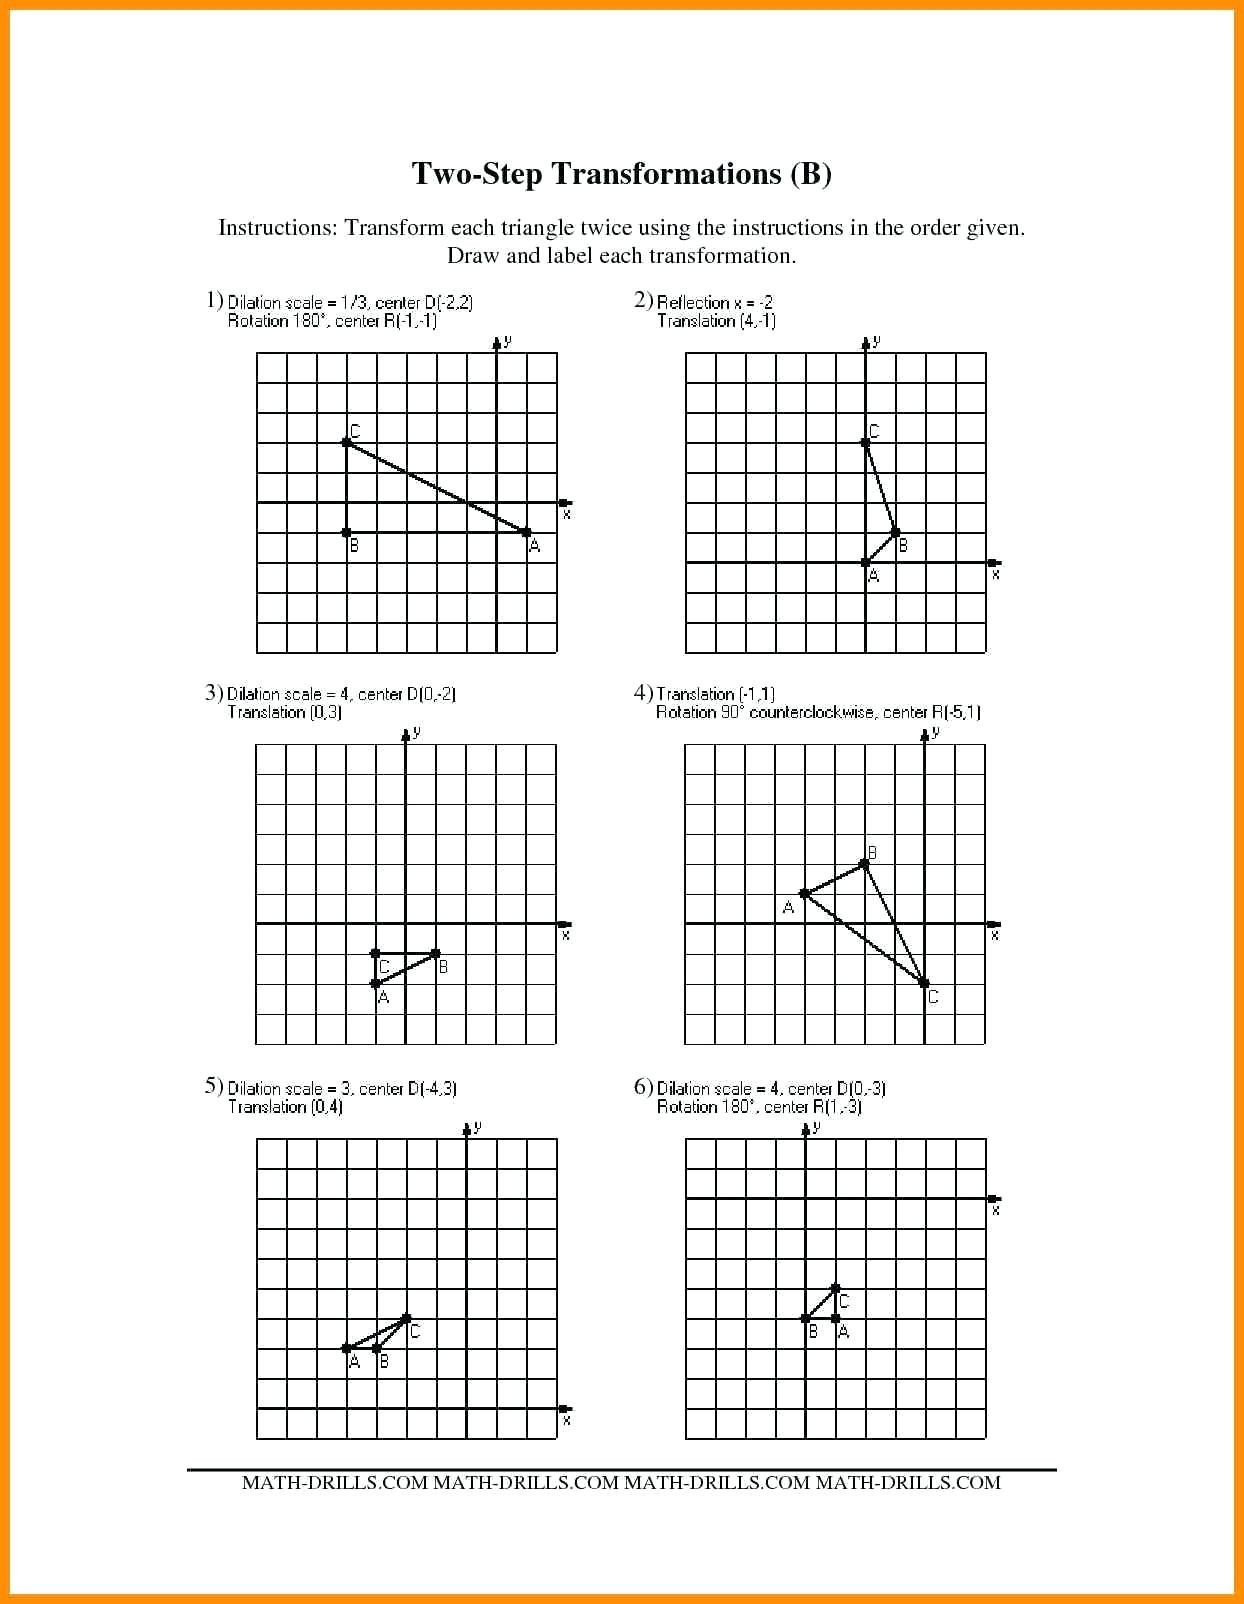 Translation Math Worksheets 3 Free Math Worksheets Third Grade 3 Subtraction Subtract